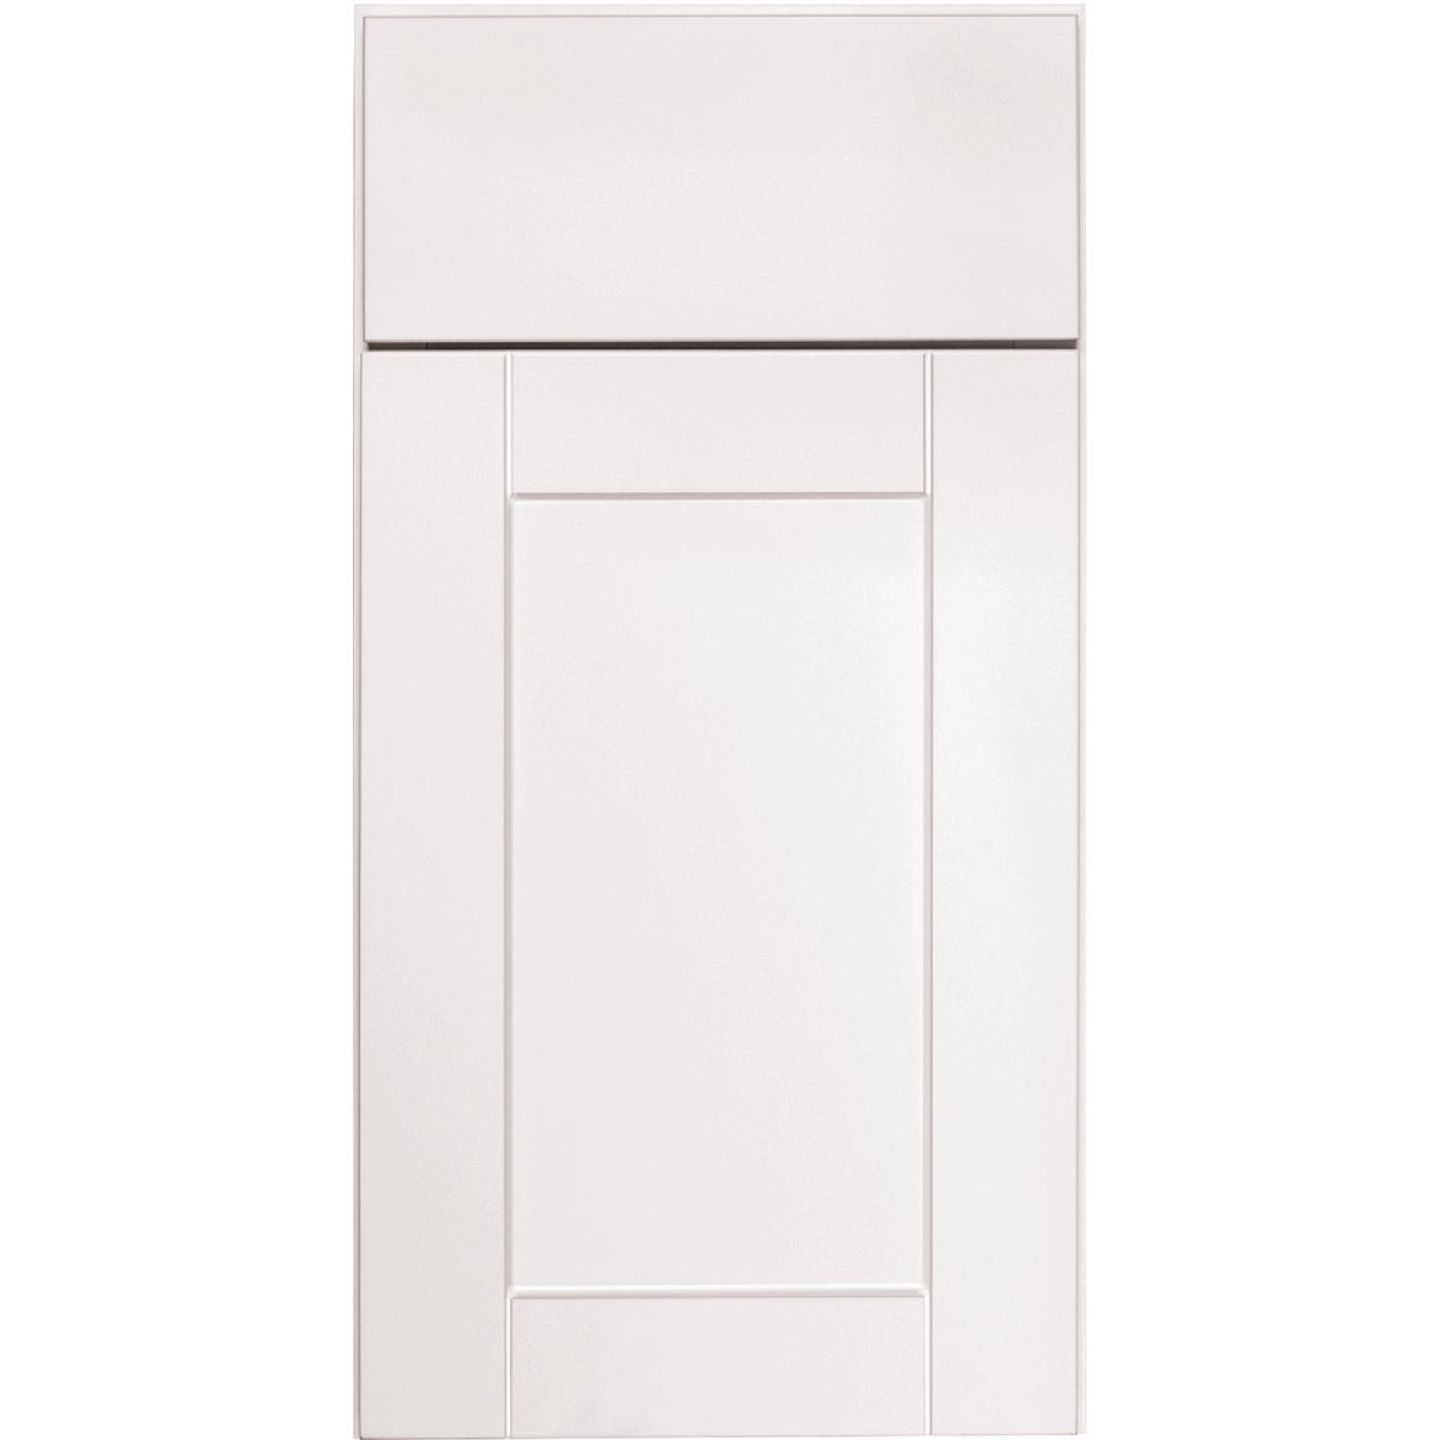 Continental Cabinets Andover Shaker 18 In. W x 34-1/2 In. H x 24 In. D White Thermofoil Kitchen Cabinet Drawer Base Image 3